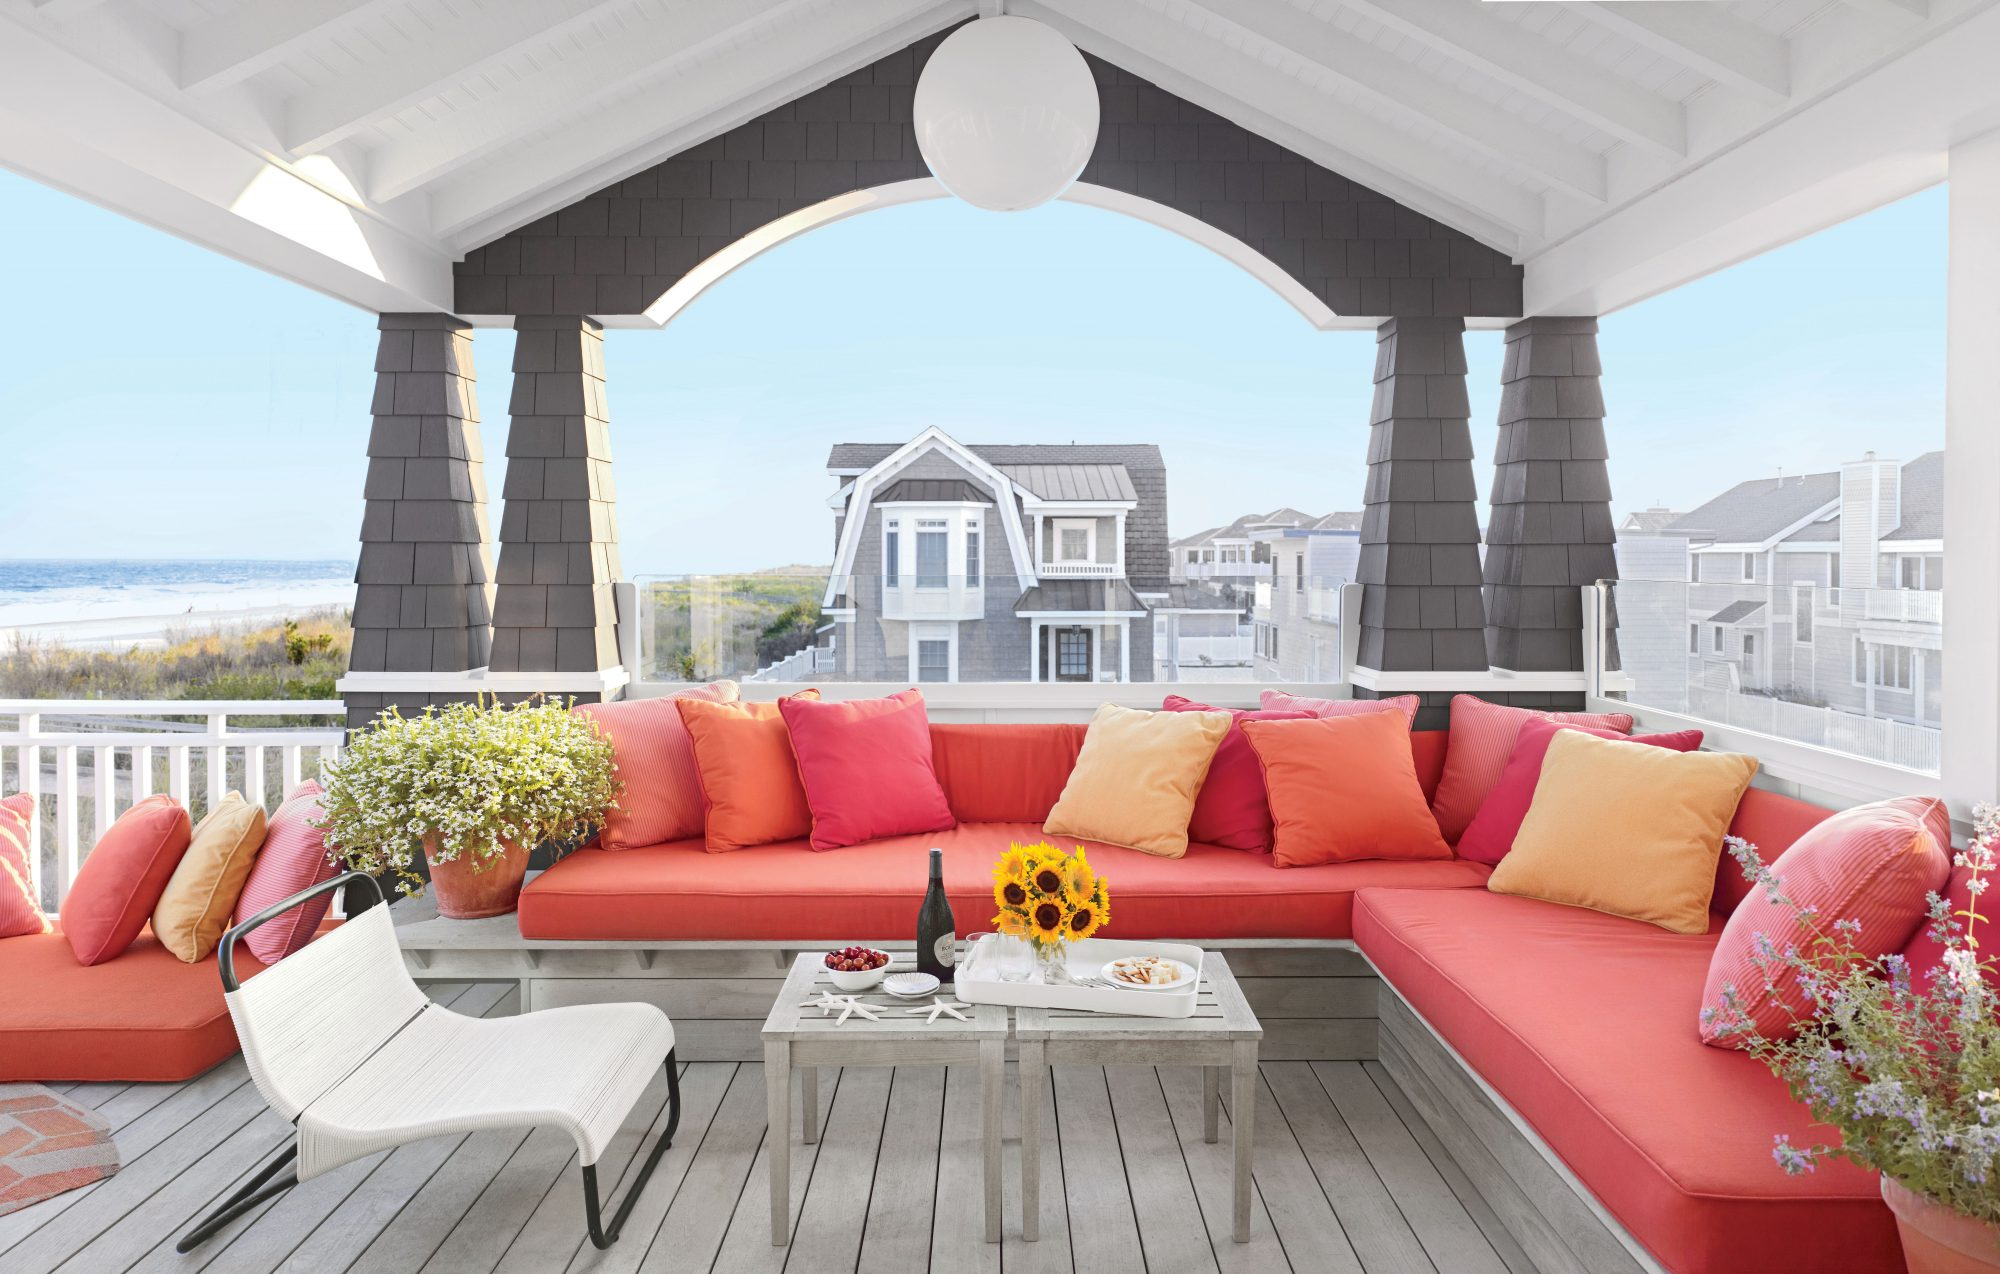 An L-shaped built-in bench with plush cushions and pillows, plus a duo of appetizer-ready tables, makes for an alfresco-ready hangout on the Jersey Shore.